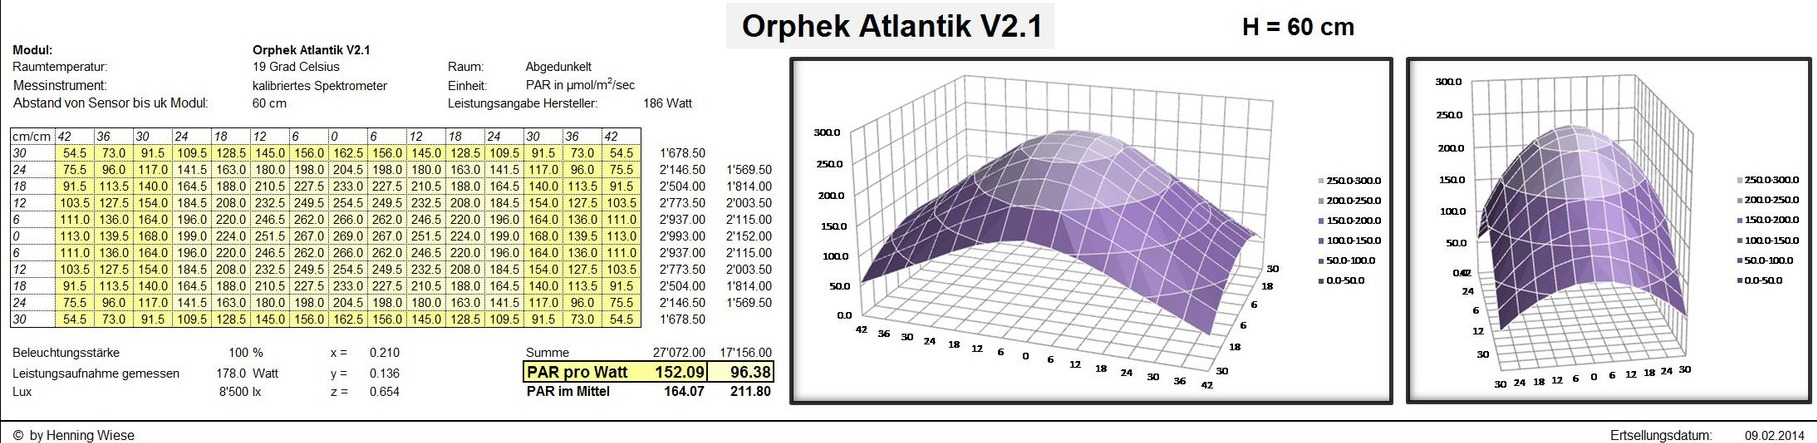 Orphek Atlantik V2.1 LED lighting fixture-PAR MAP -PAR per Watt